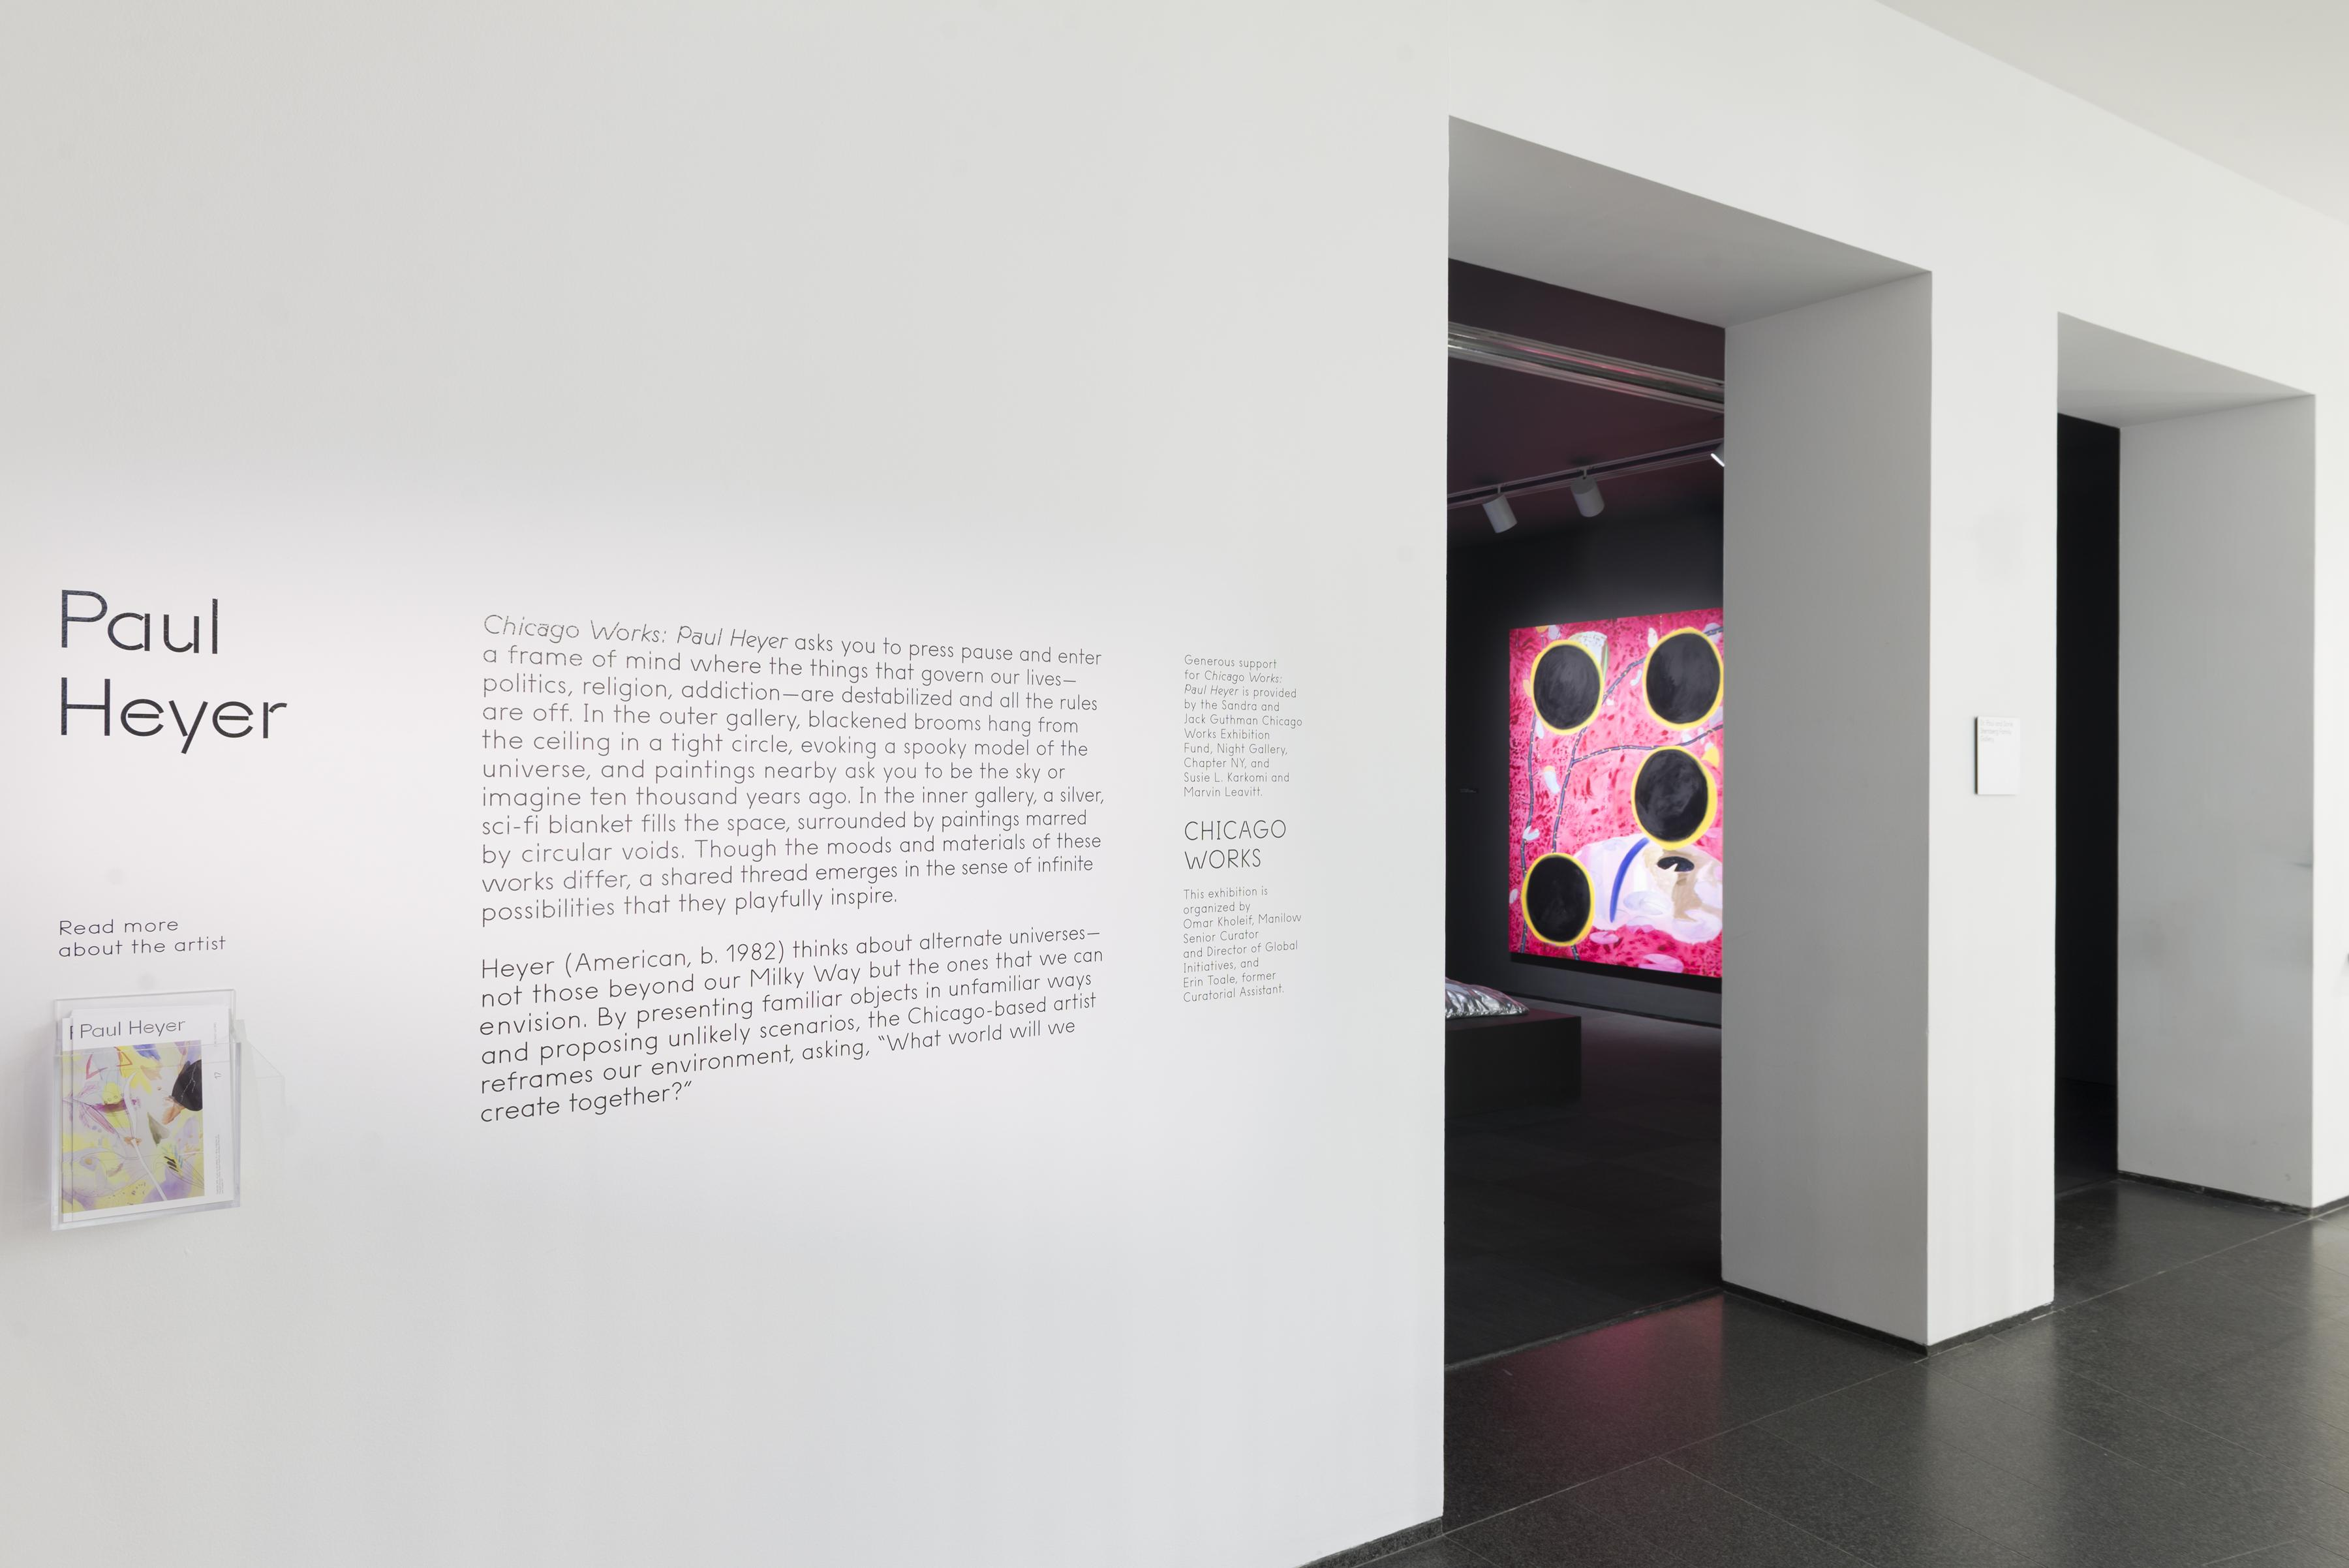 """An exterior shot of an art gallery reads """"Paul Heyer"""" in large text with smaller text introducing the exhibit. The gallery is dark, with a large red painting illuminated on the wall."""